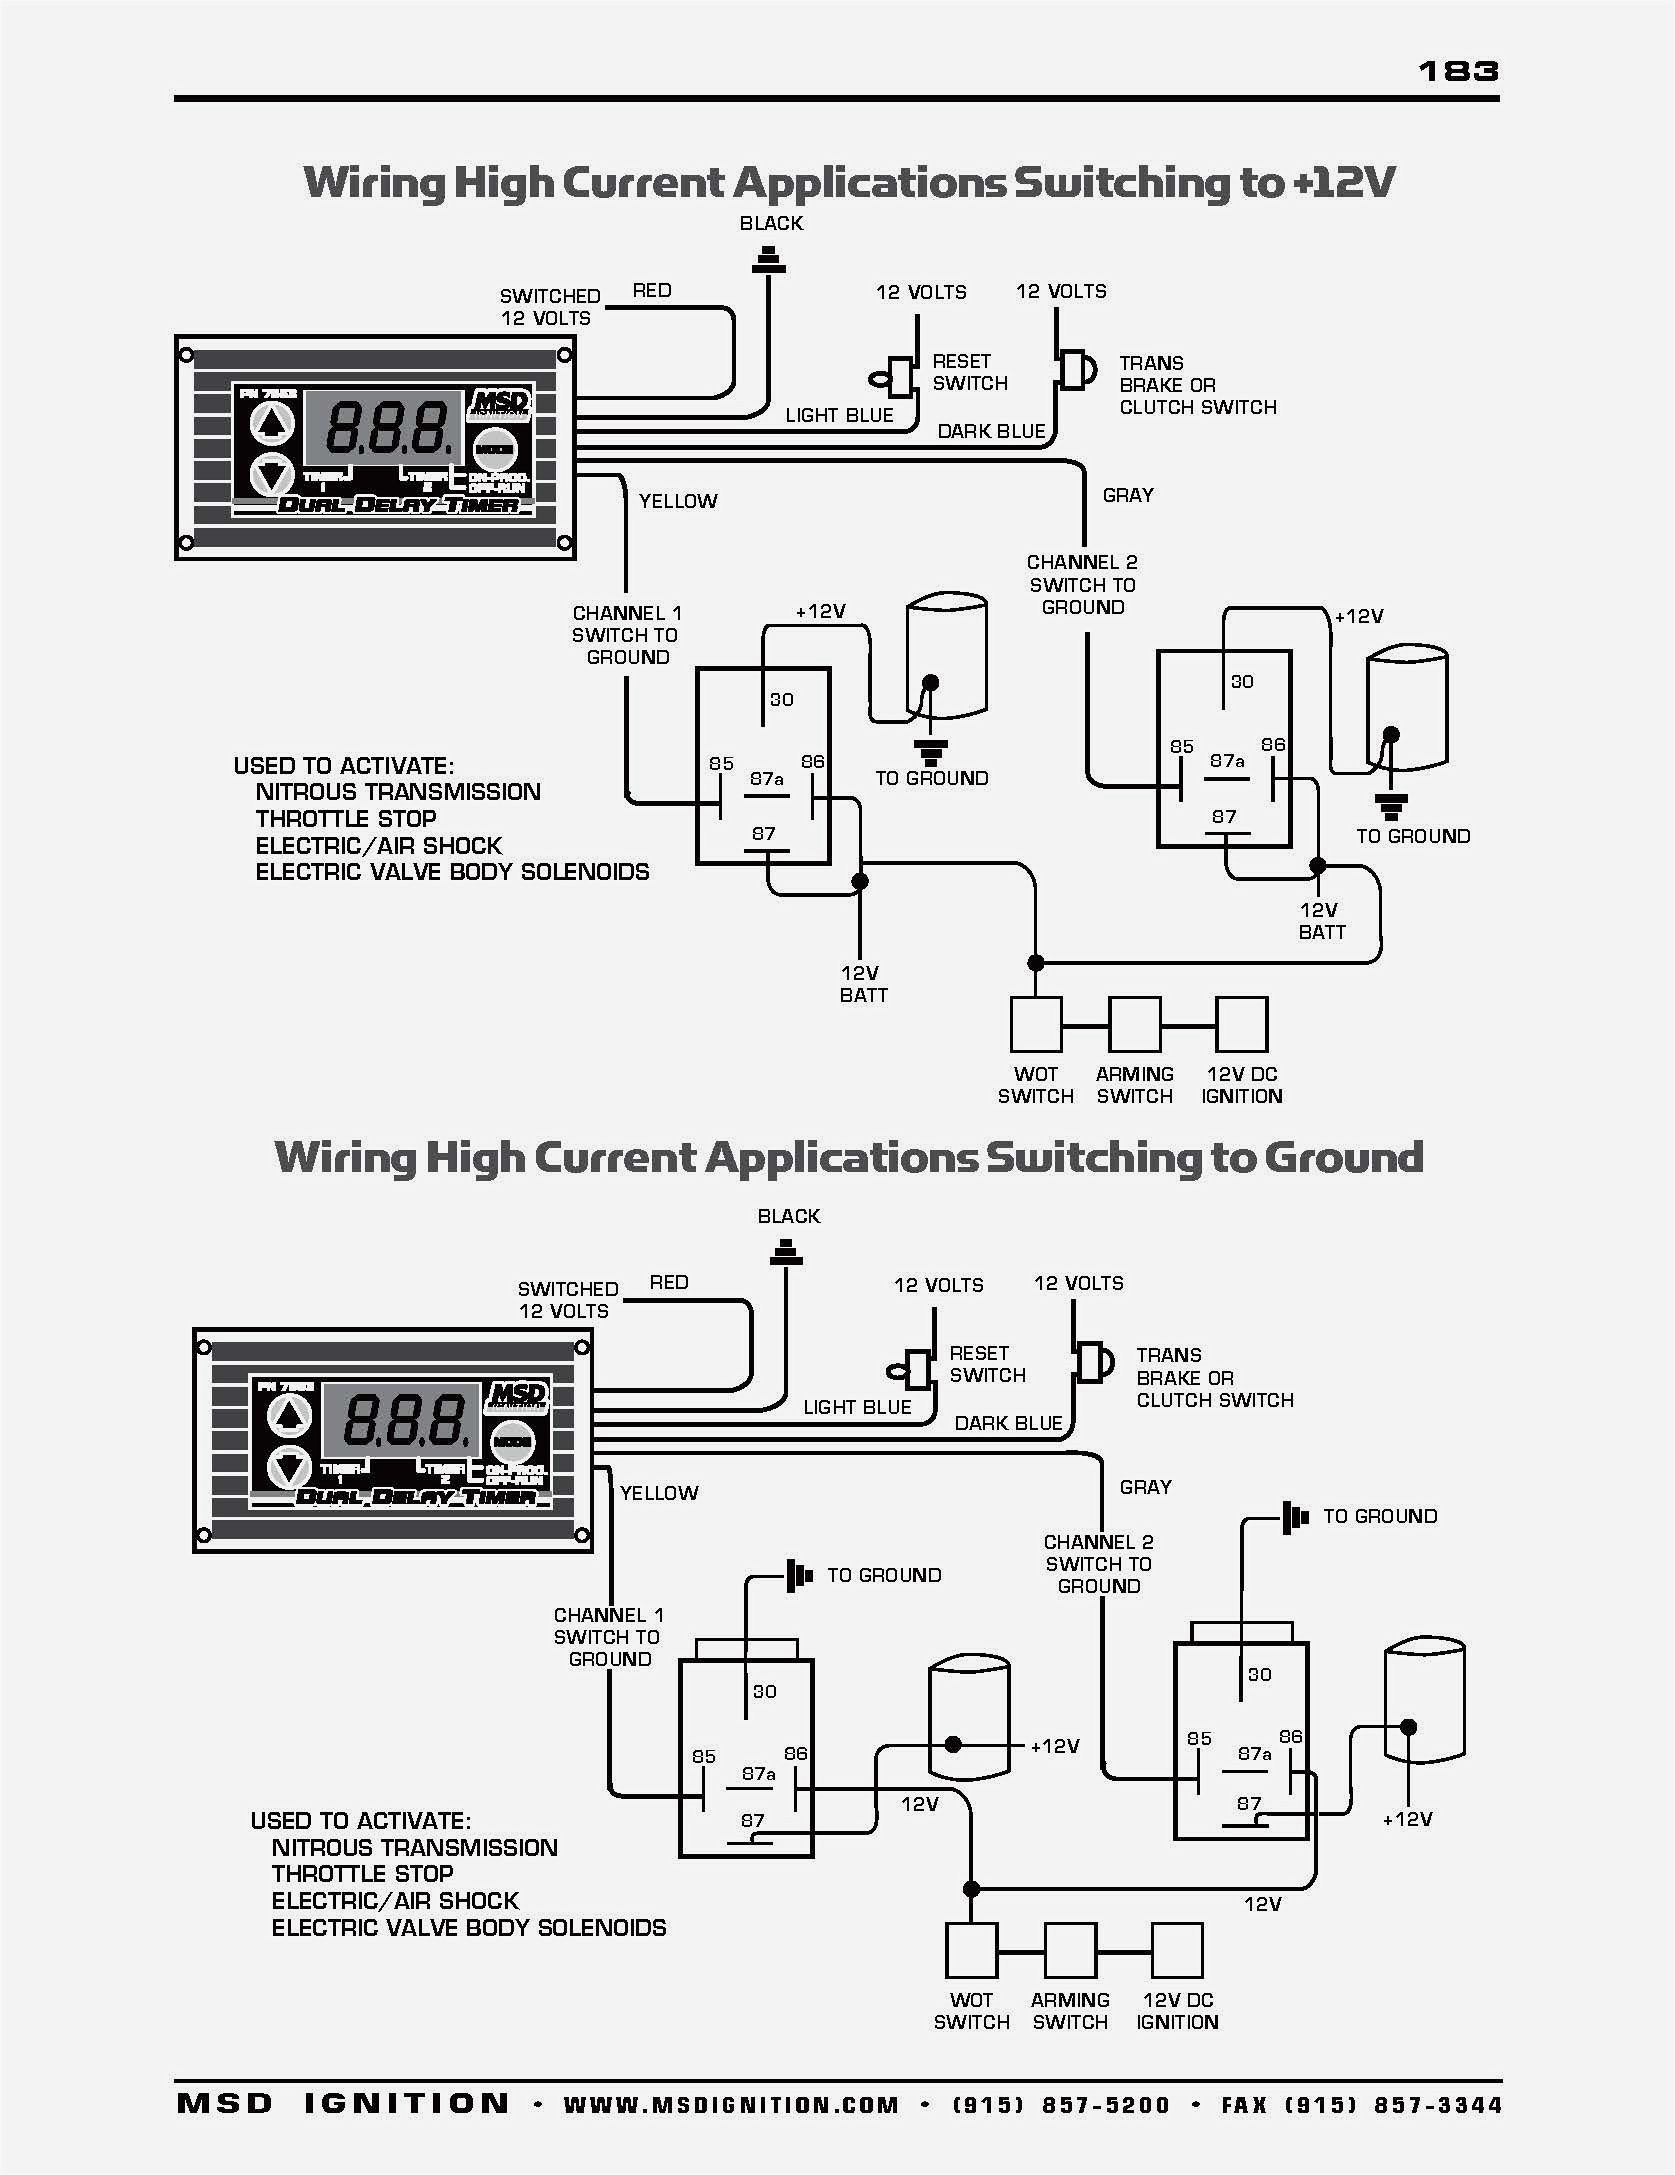 btv box new wiring diagrams pictures wiring diagrams